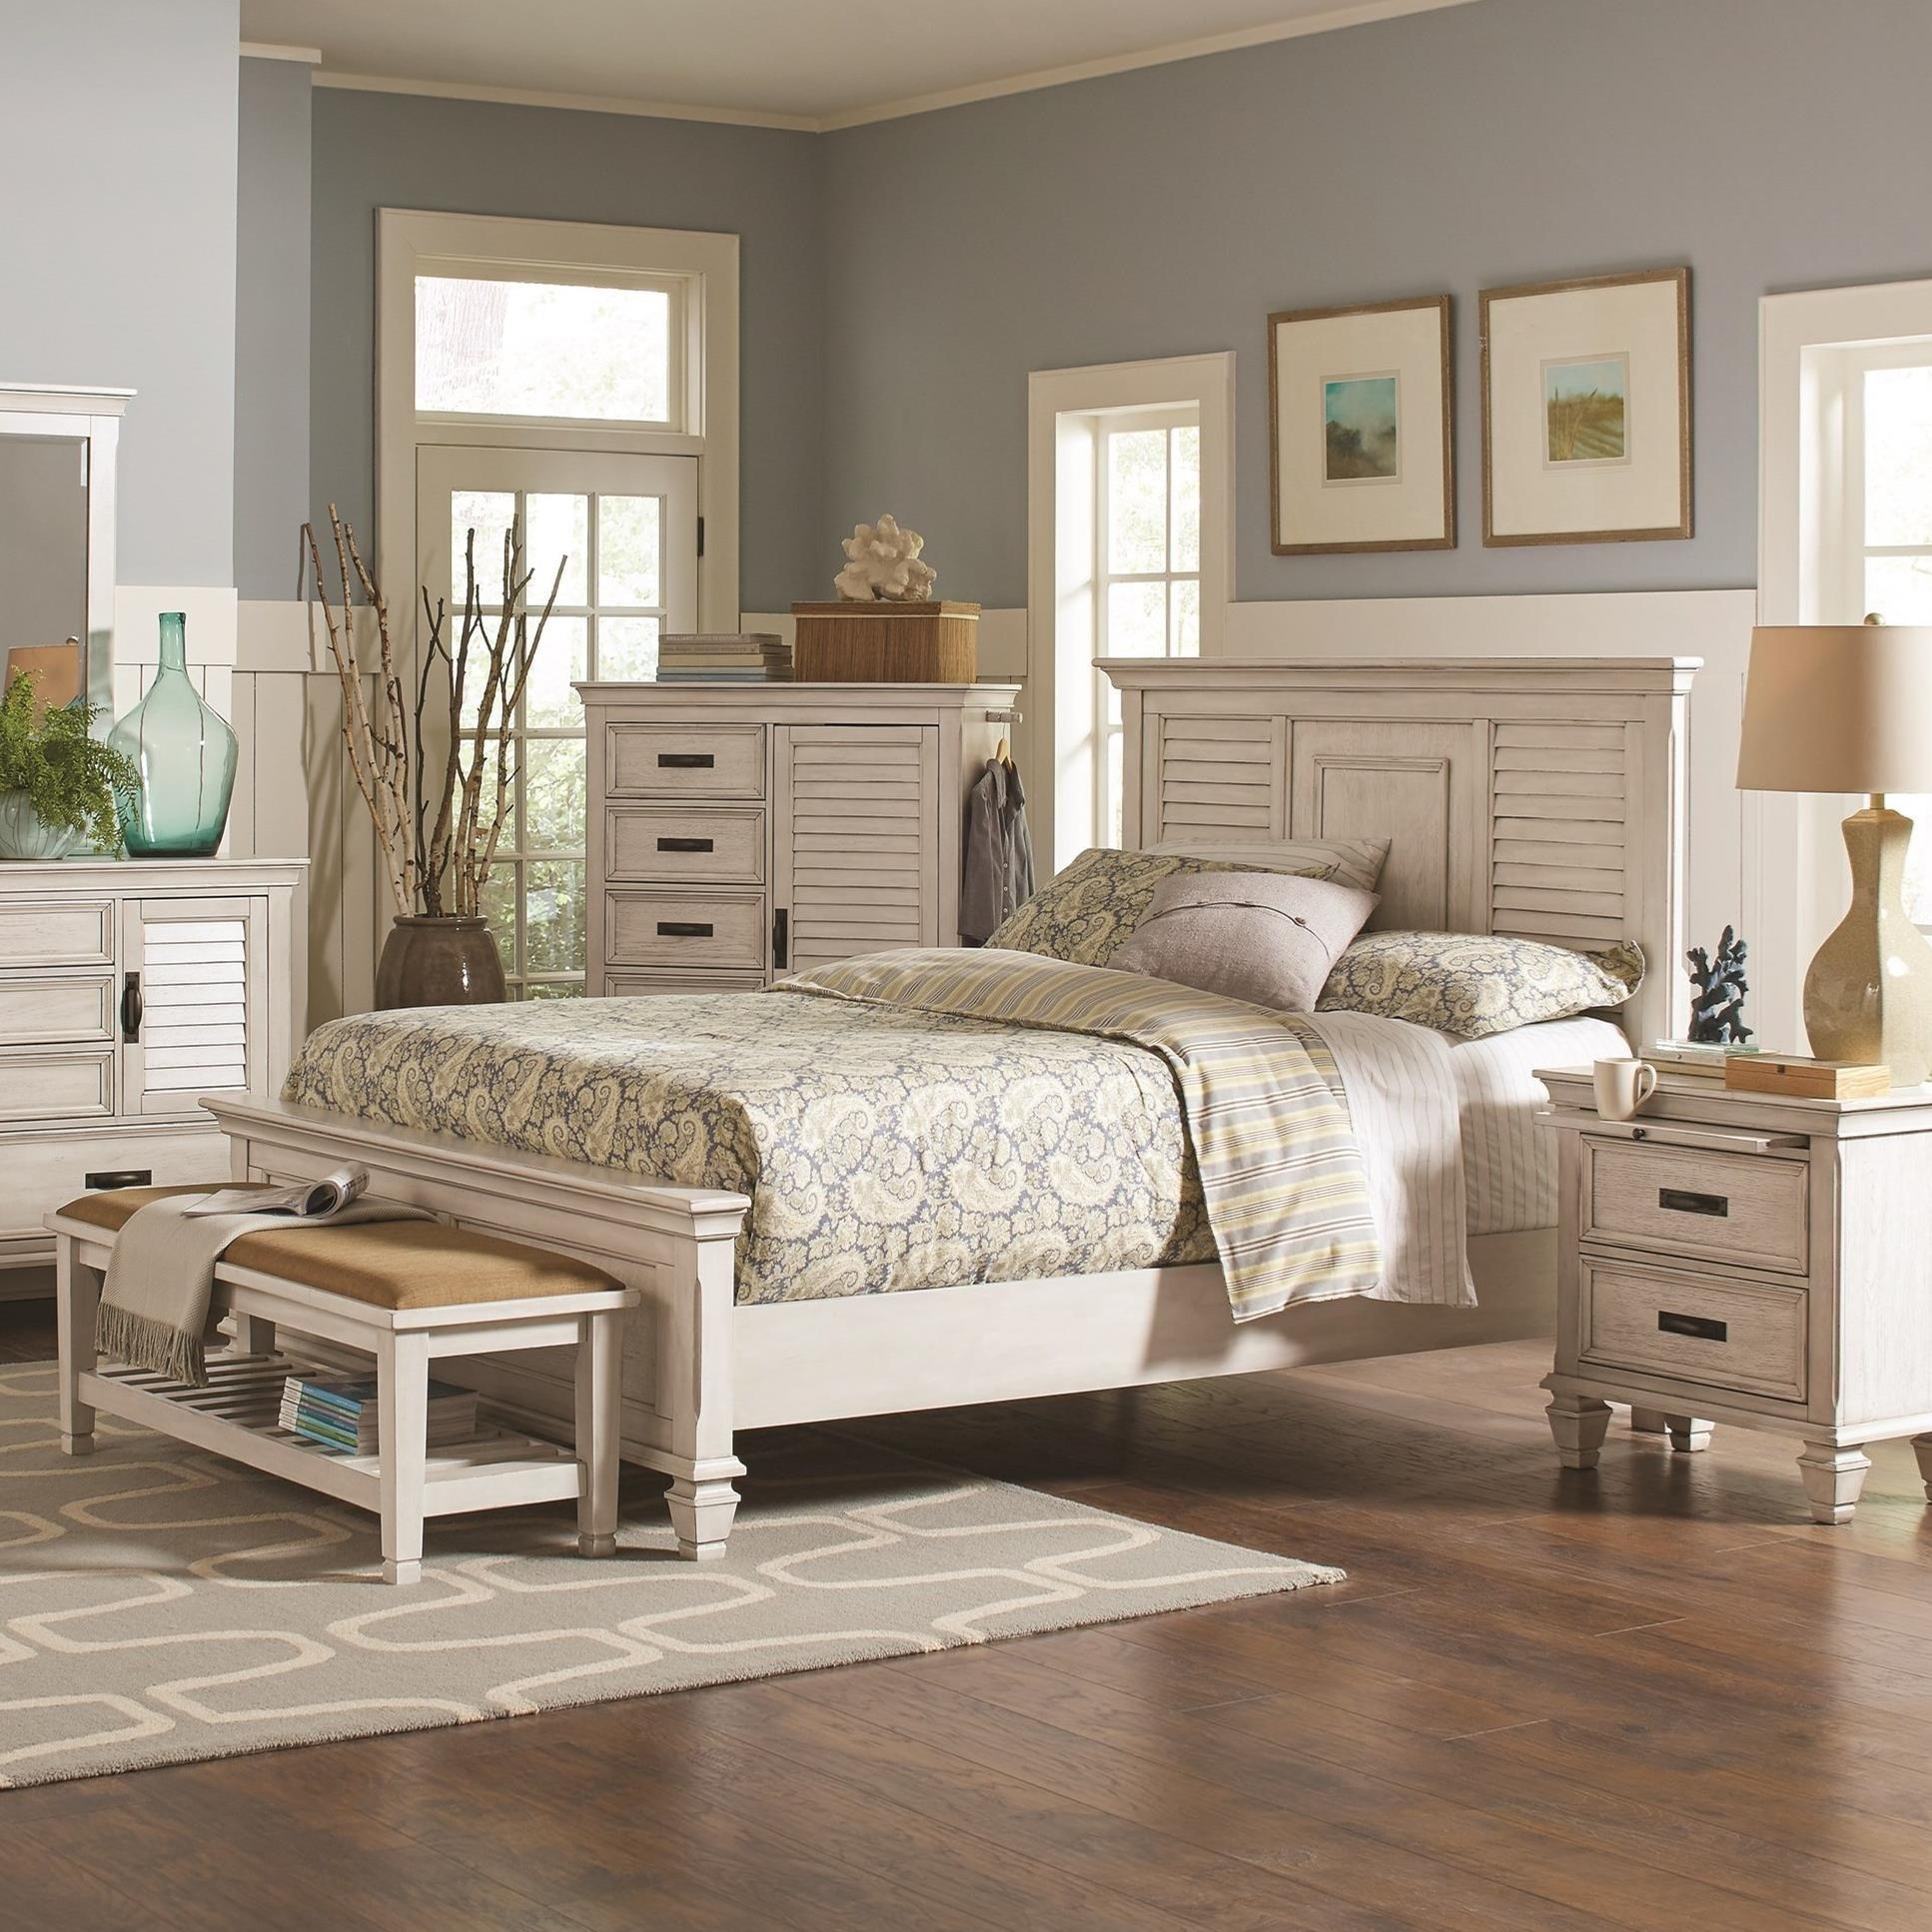 Franco King Bed by Coaster at Northeast Factory Direct